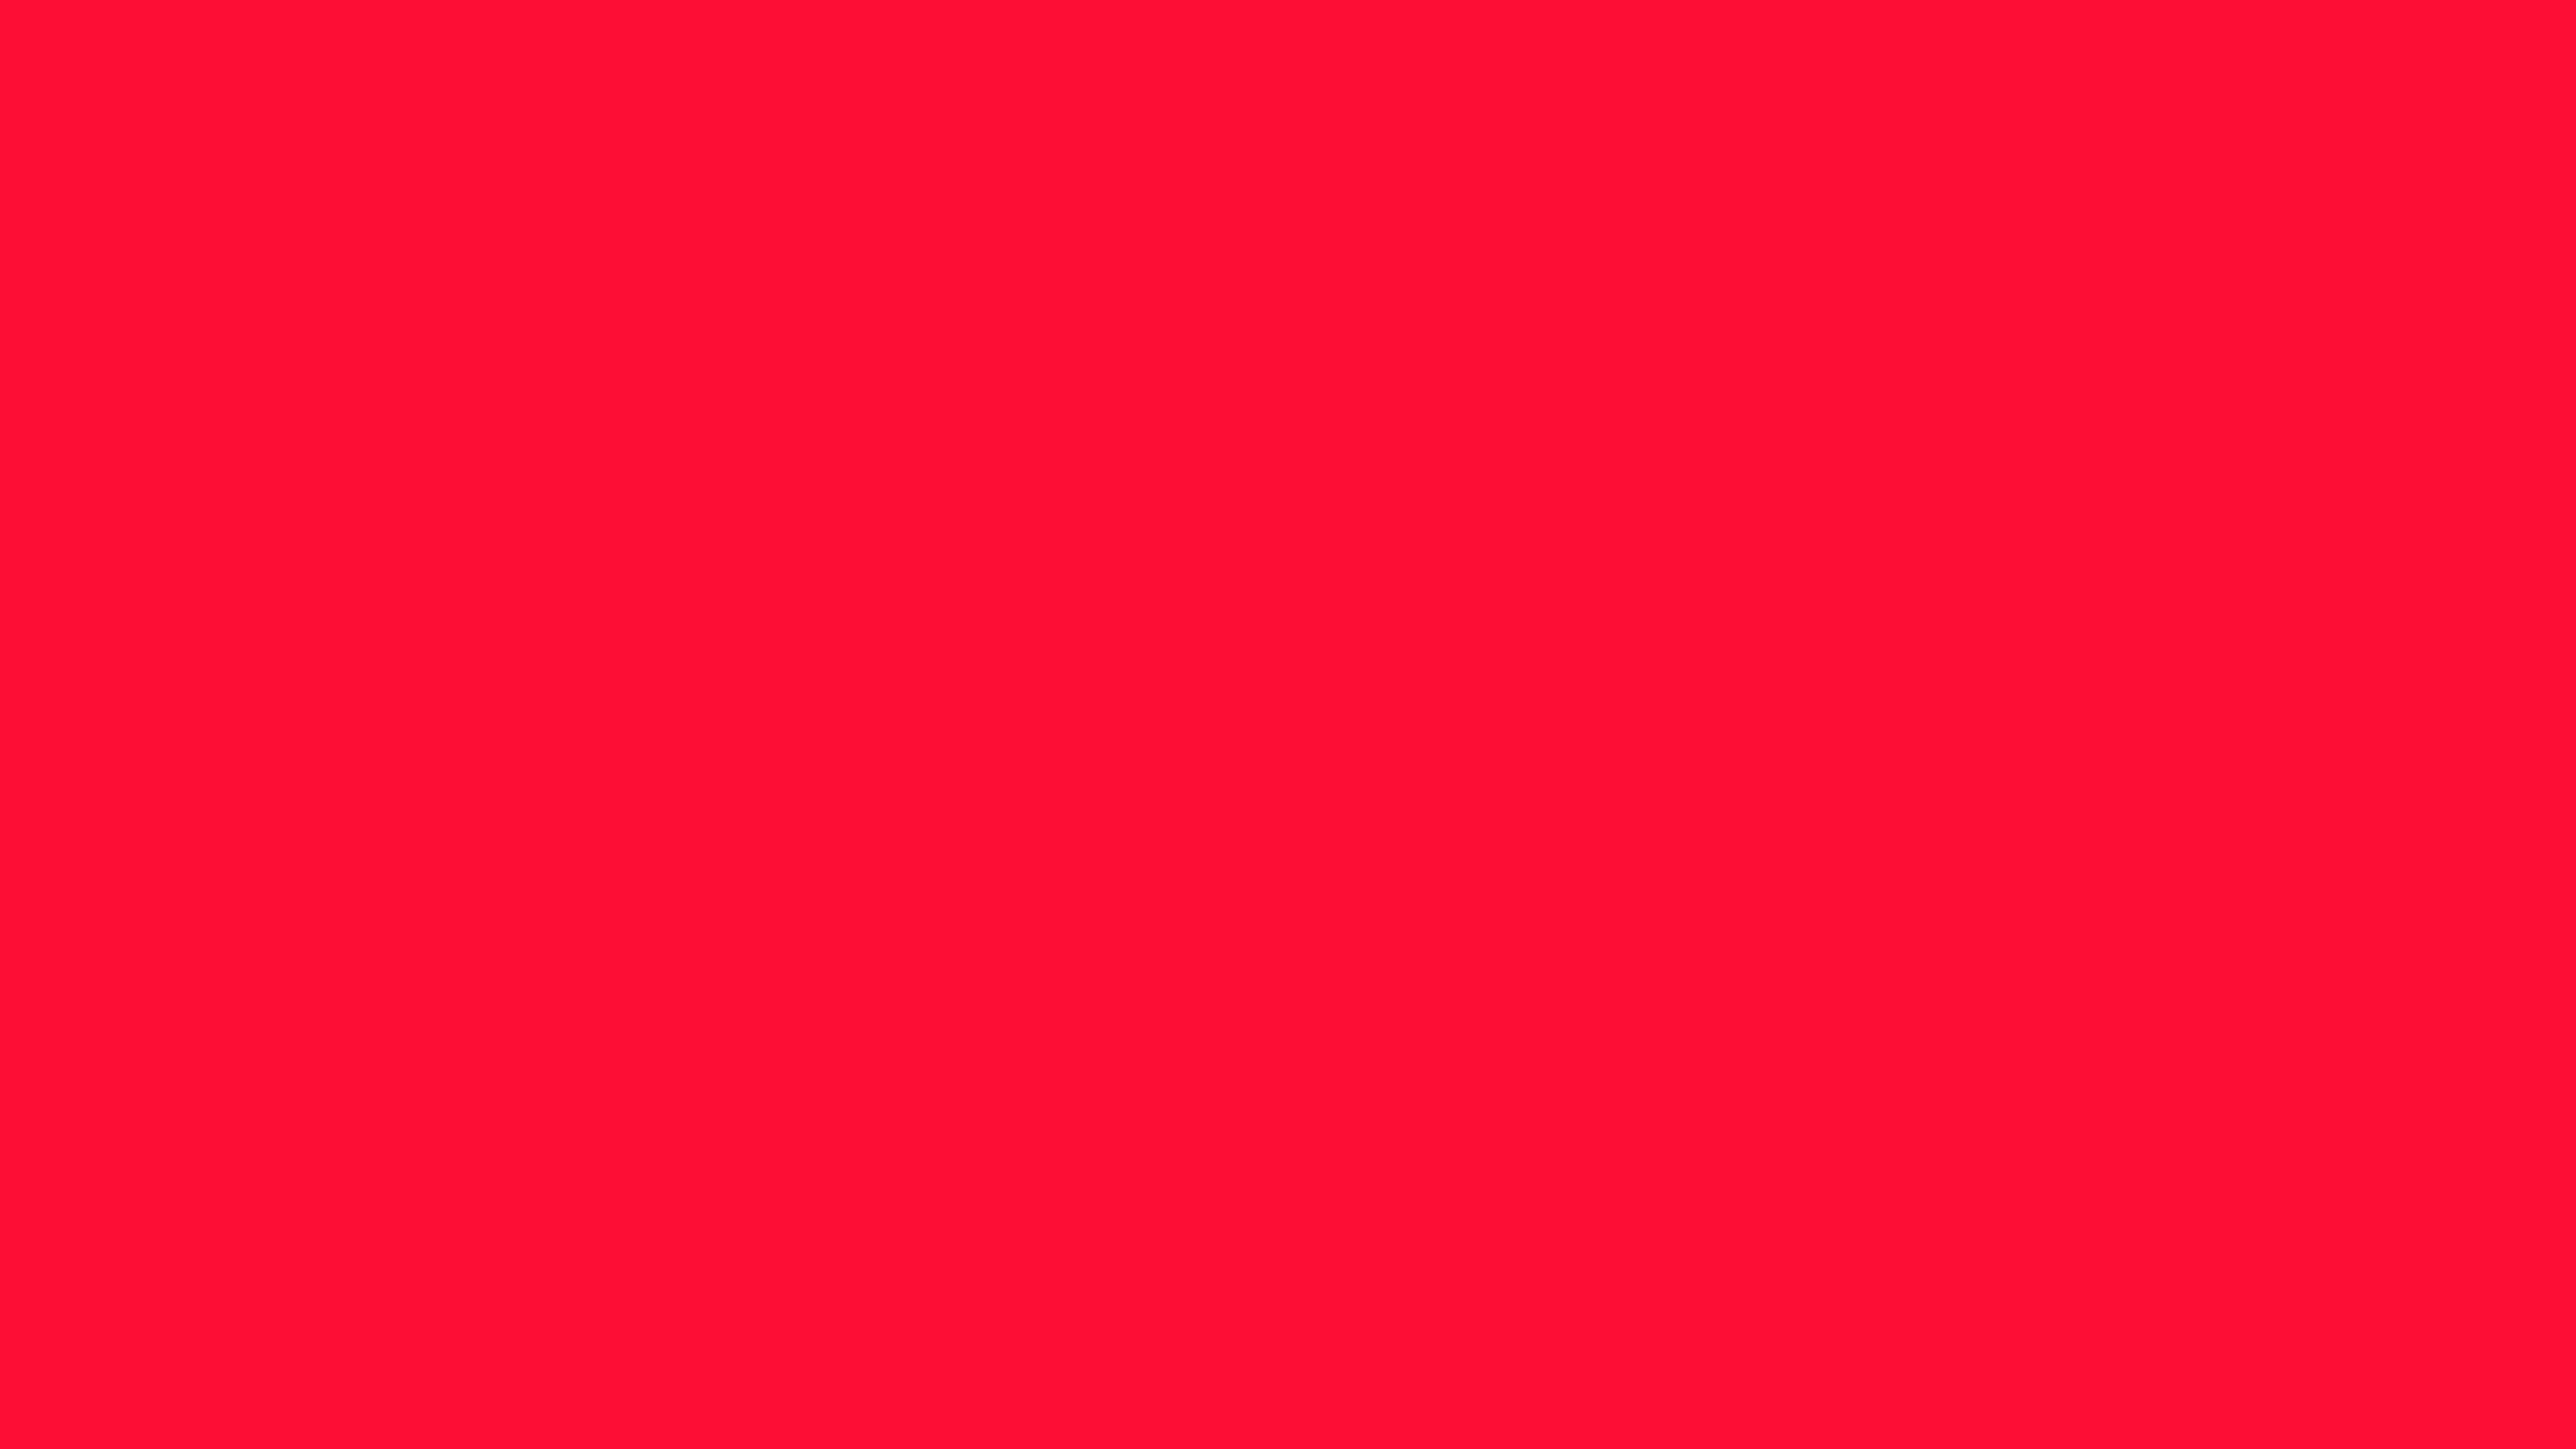 7680x4320 Tractor Red Solid Color Background